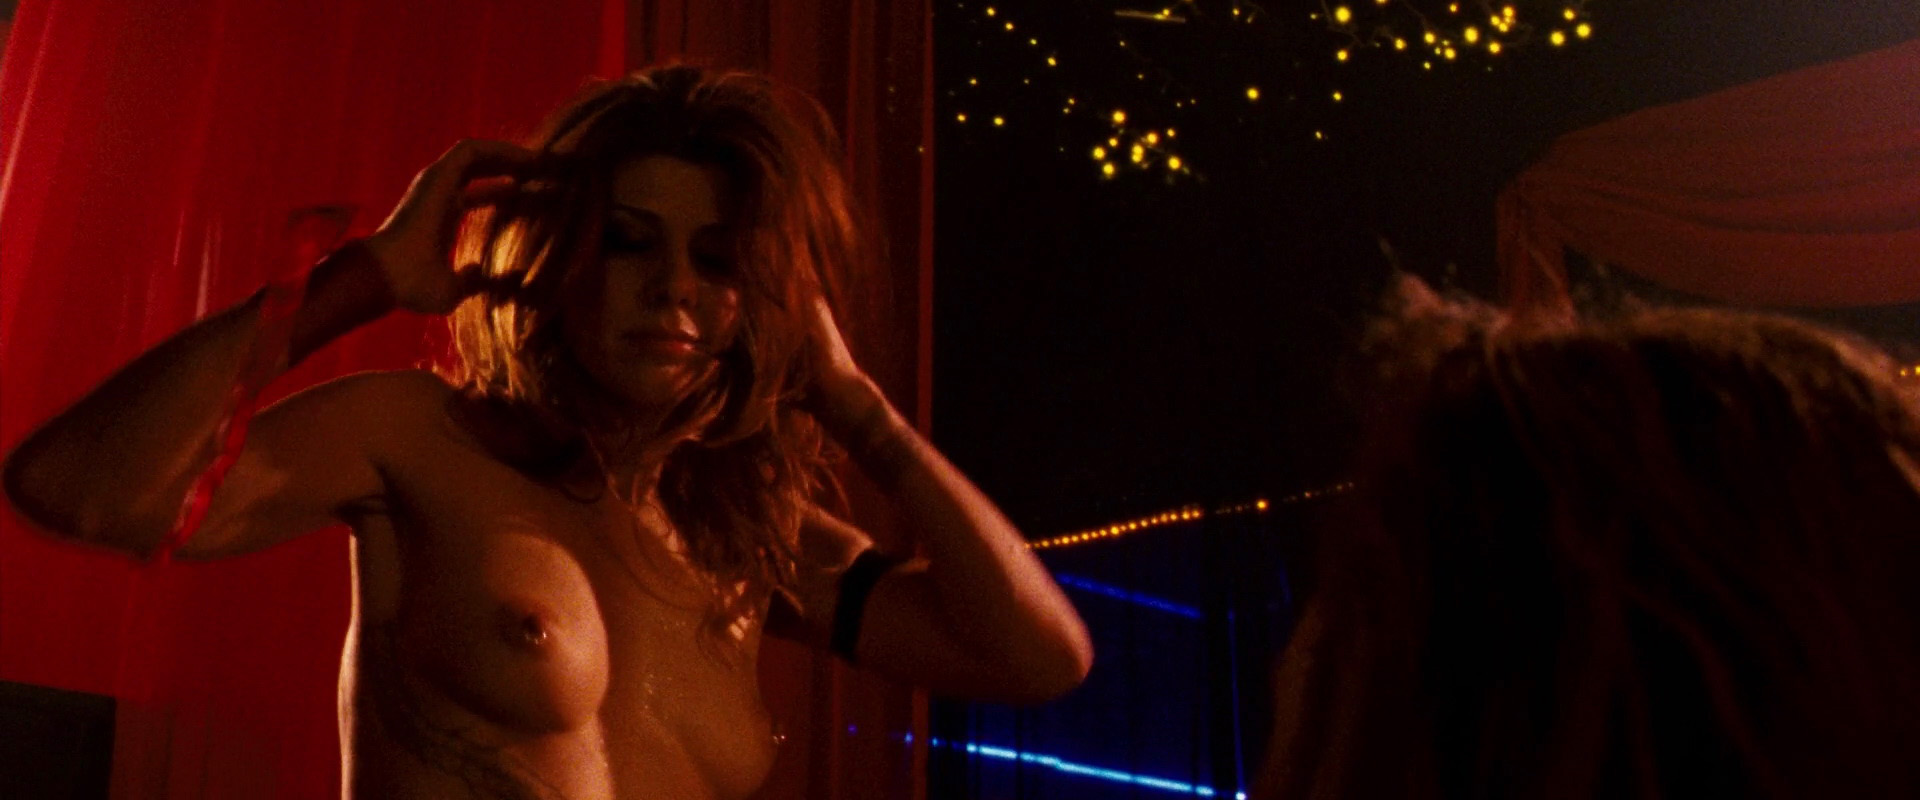 Marisa Tomei – The Wrestler (2008) HD 1080p